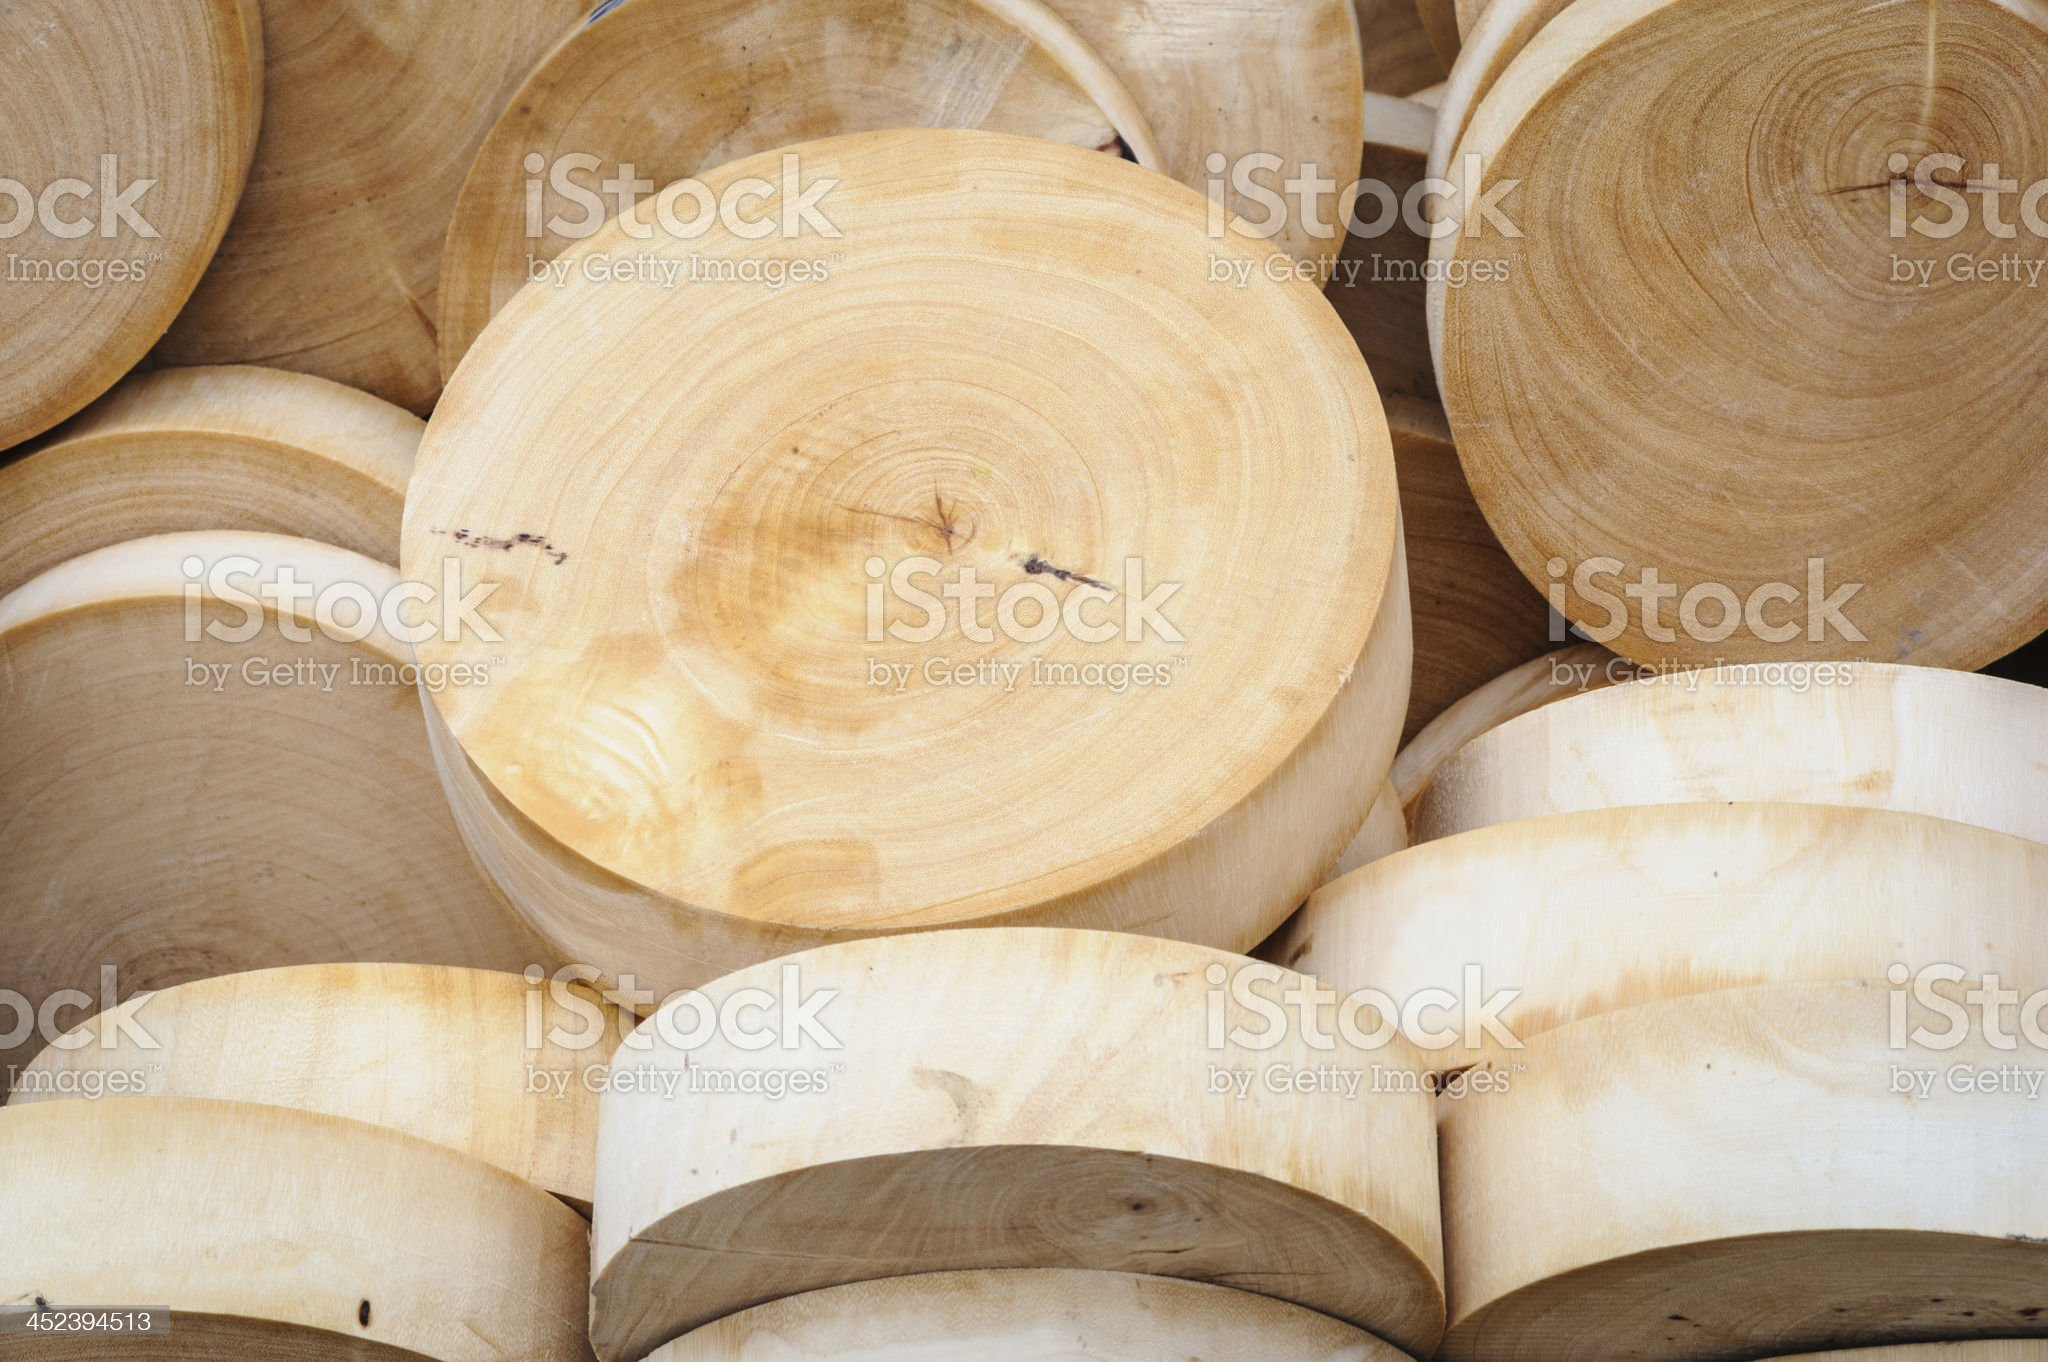 Round wooden cutting boards in market. royalty-free stock photo